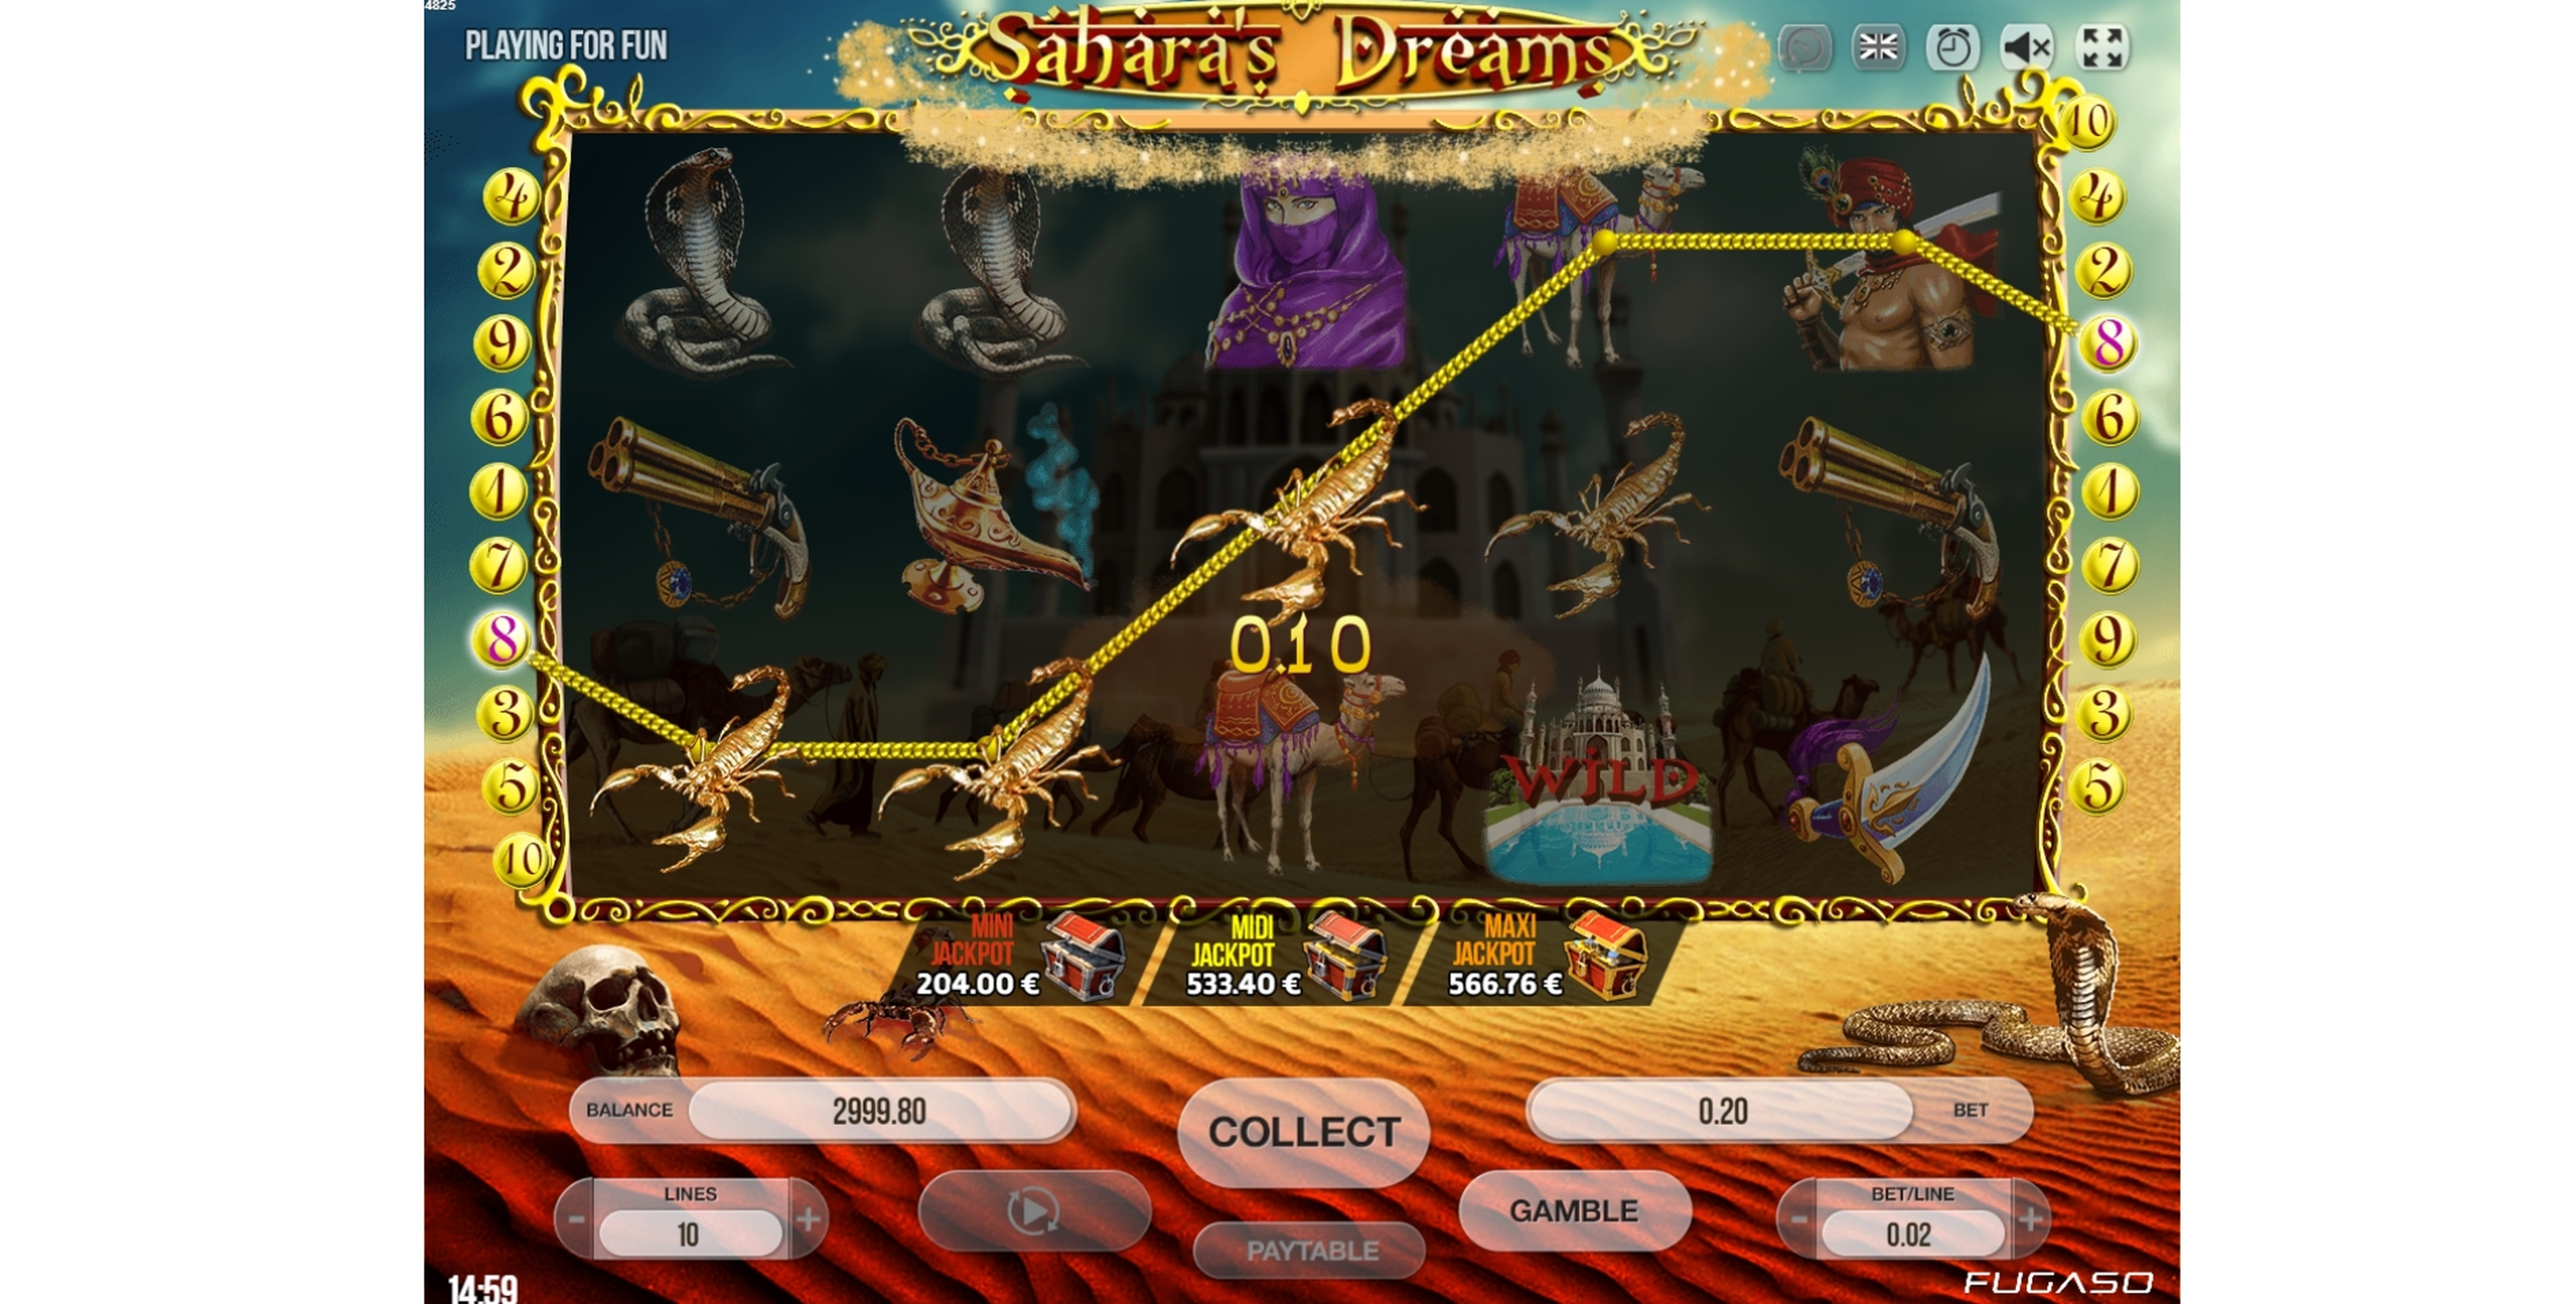 Win Money in Sahara's Dreams Free Slot Game by Fugaso